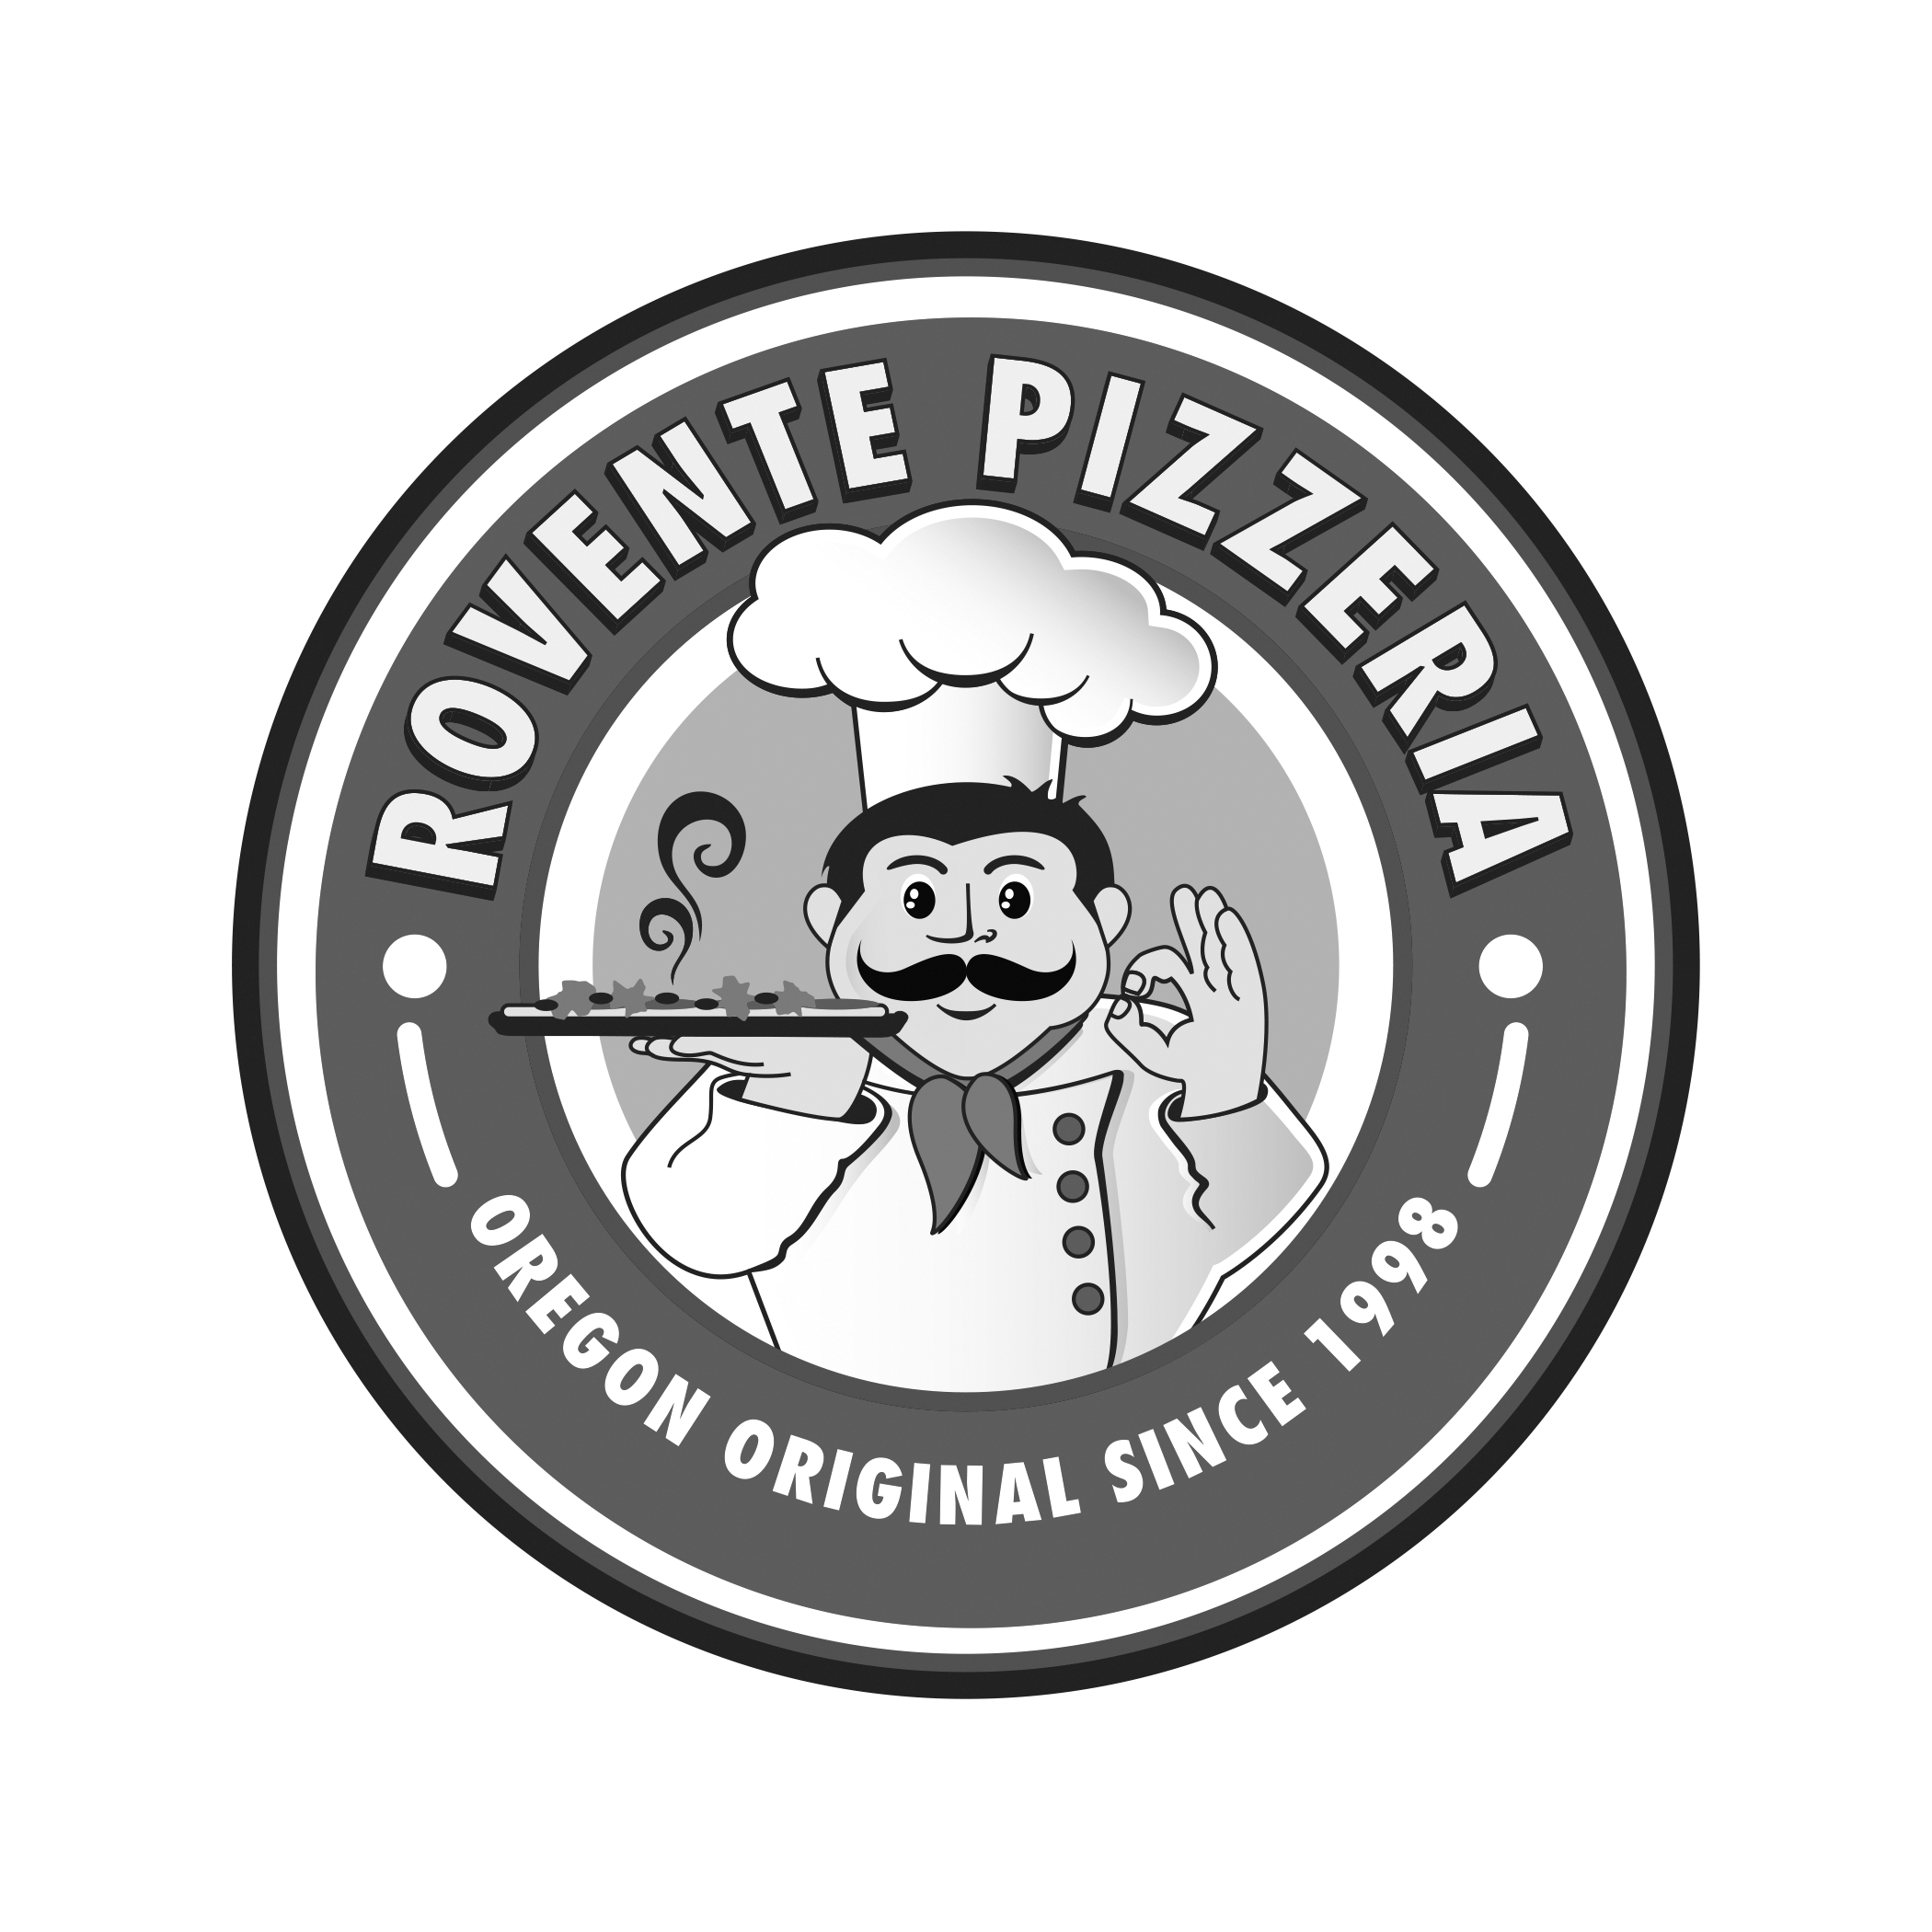 RoventePizza_BWWeb.png